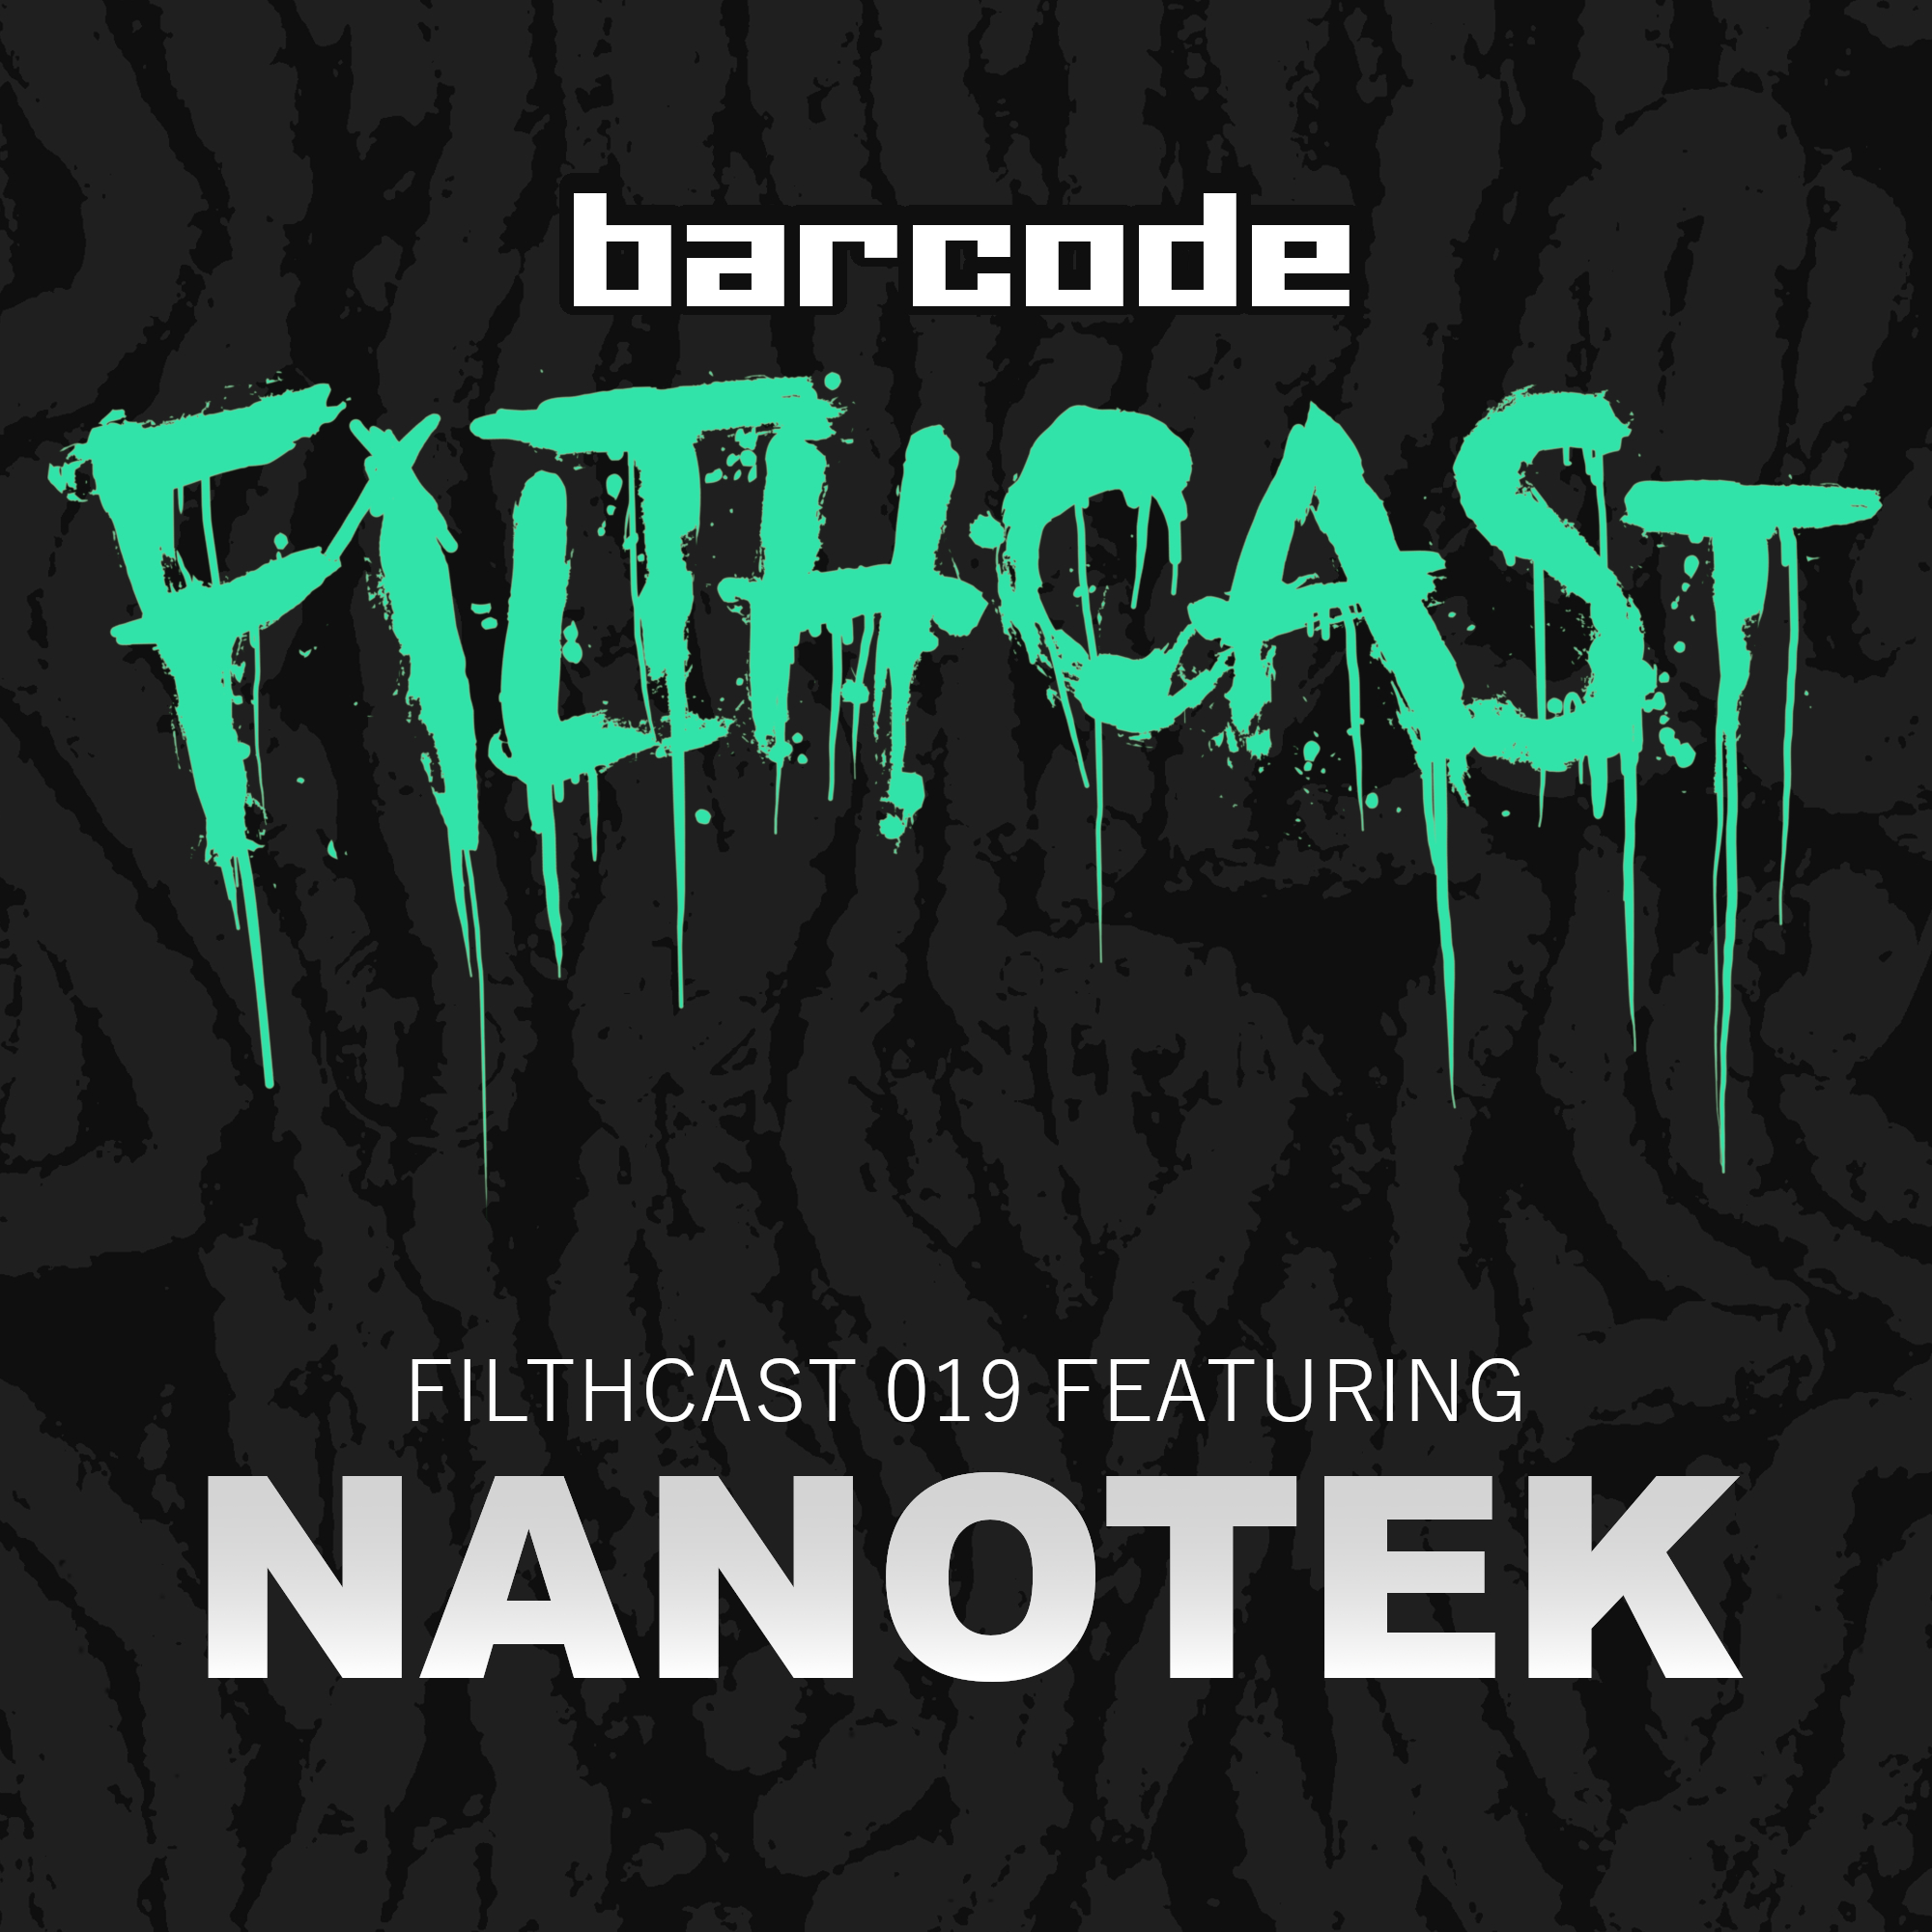 Thought-provoking and imaginative, yet as bruising and offensive as any other Filthcast, New Zealand dark lord Nanotek leads us through a realm of sinister territories.